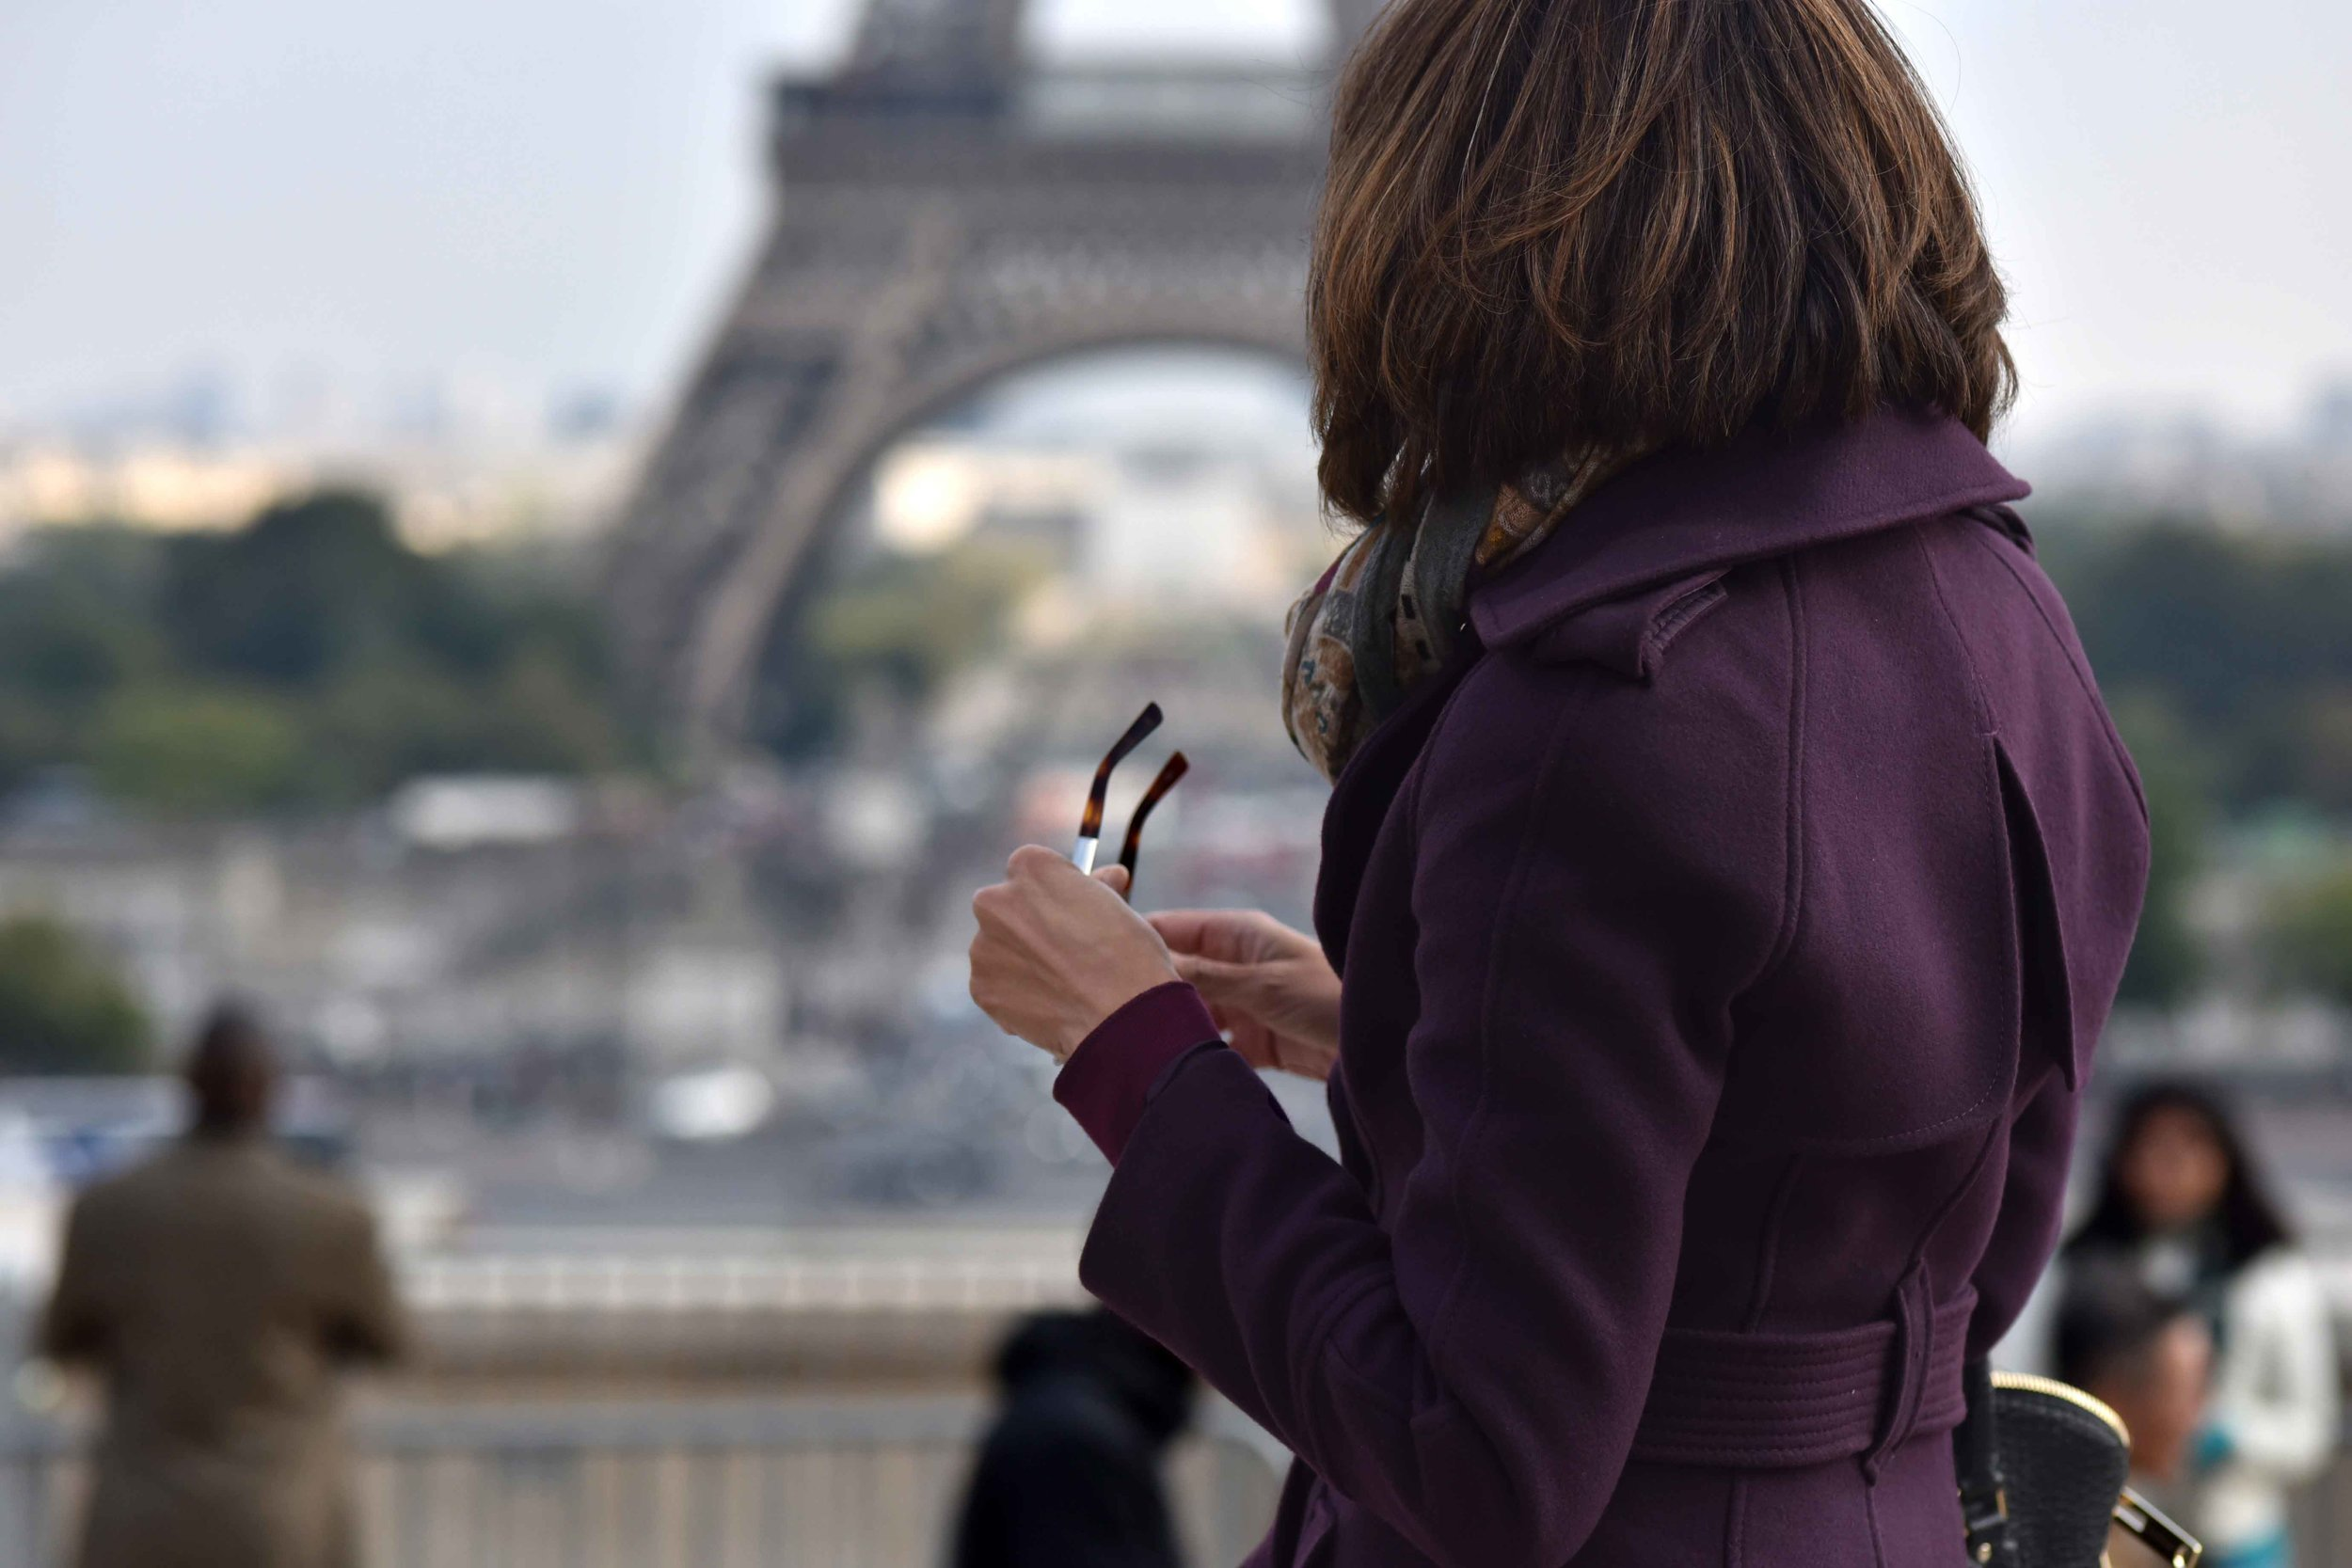 Karen Millen fall winter coat, Gucci sunglasses, Eiffel Tower, Paris. Image©sourcingstyle.com